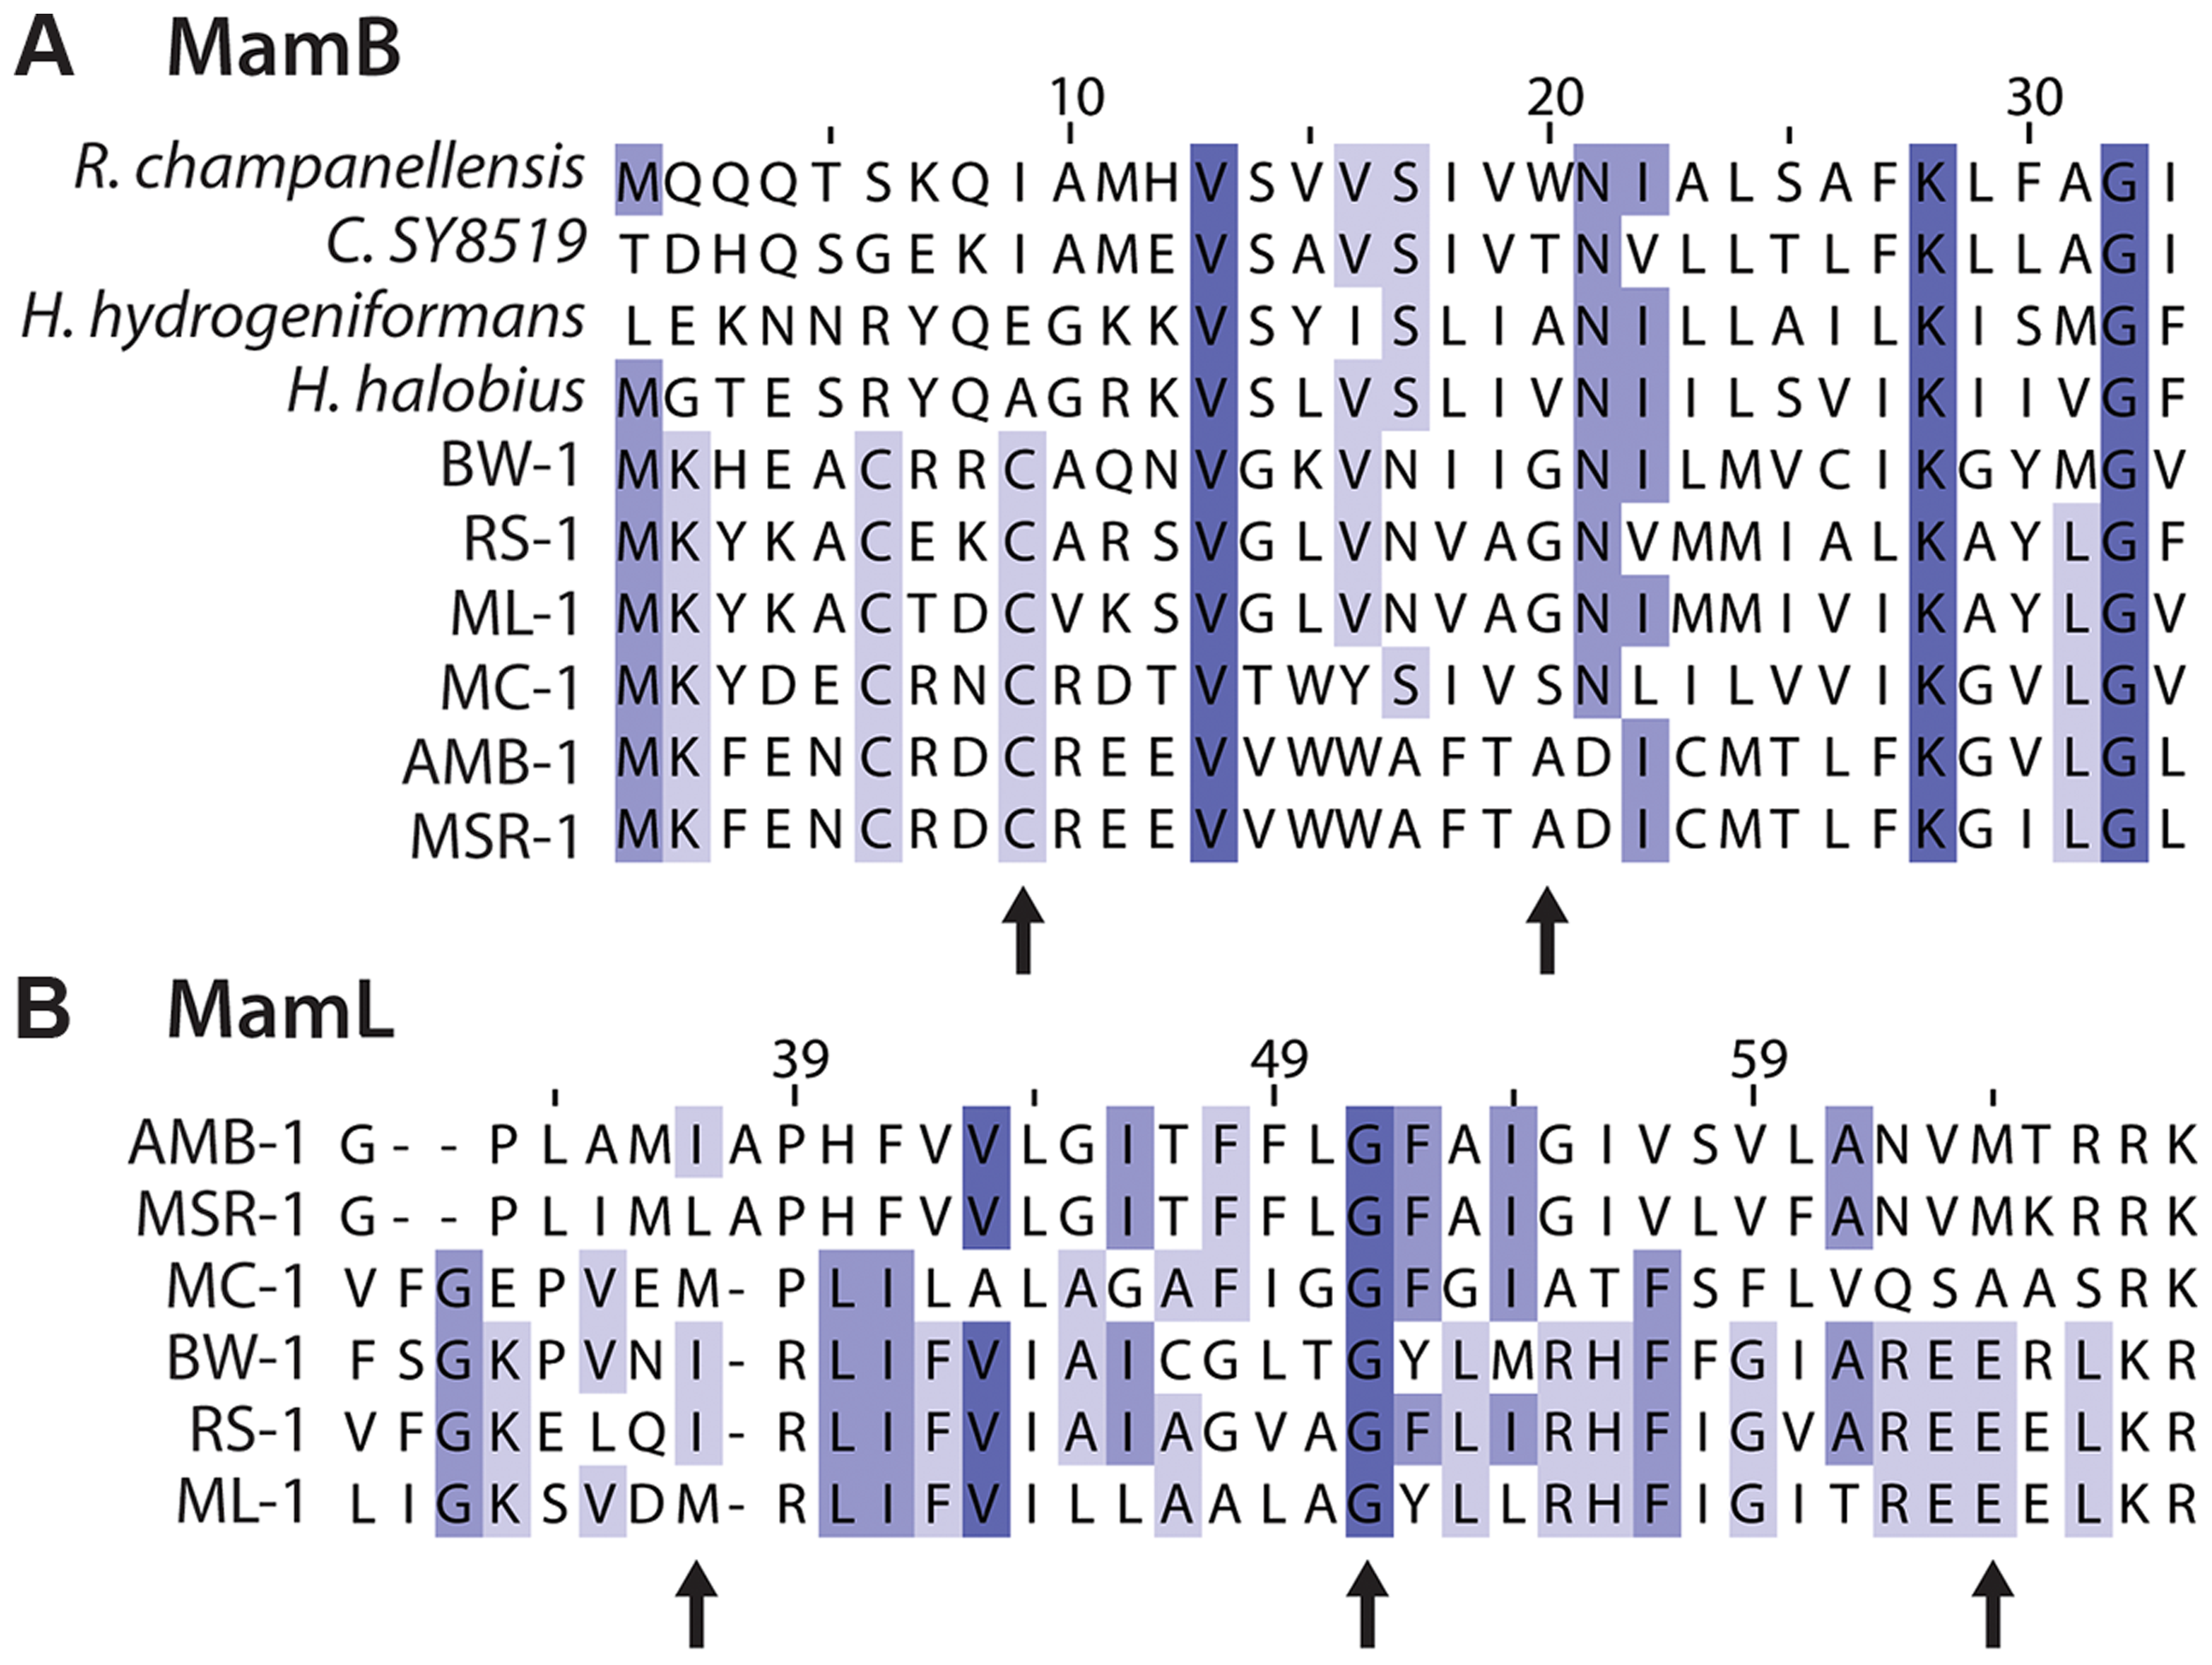 Details of multiple sequence alignments of magnetosome proteins.